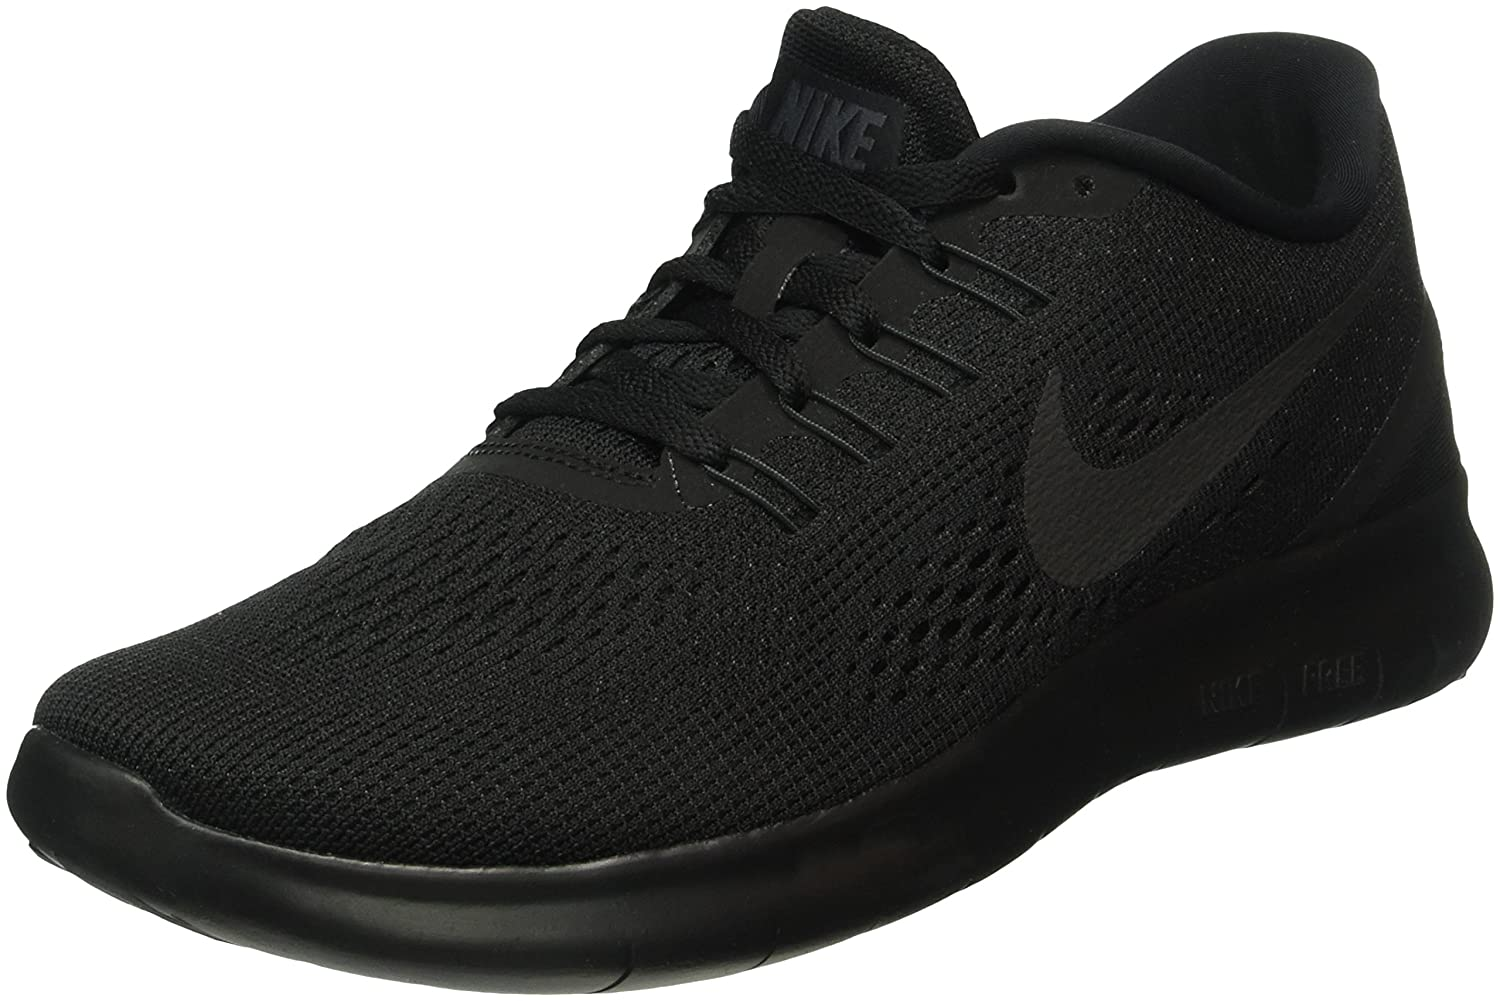 NIKE Men's Free RN Running Shoe B01G9EYYSY 11.5 D(M) US|Black/Black/Anthracite